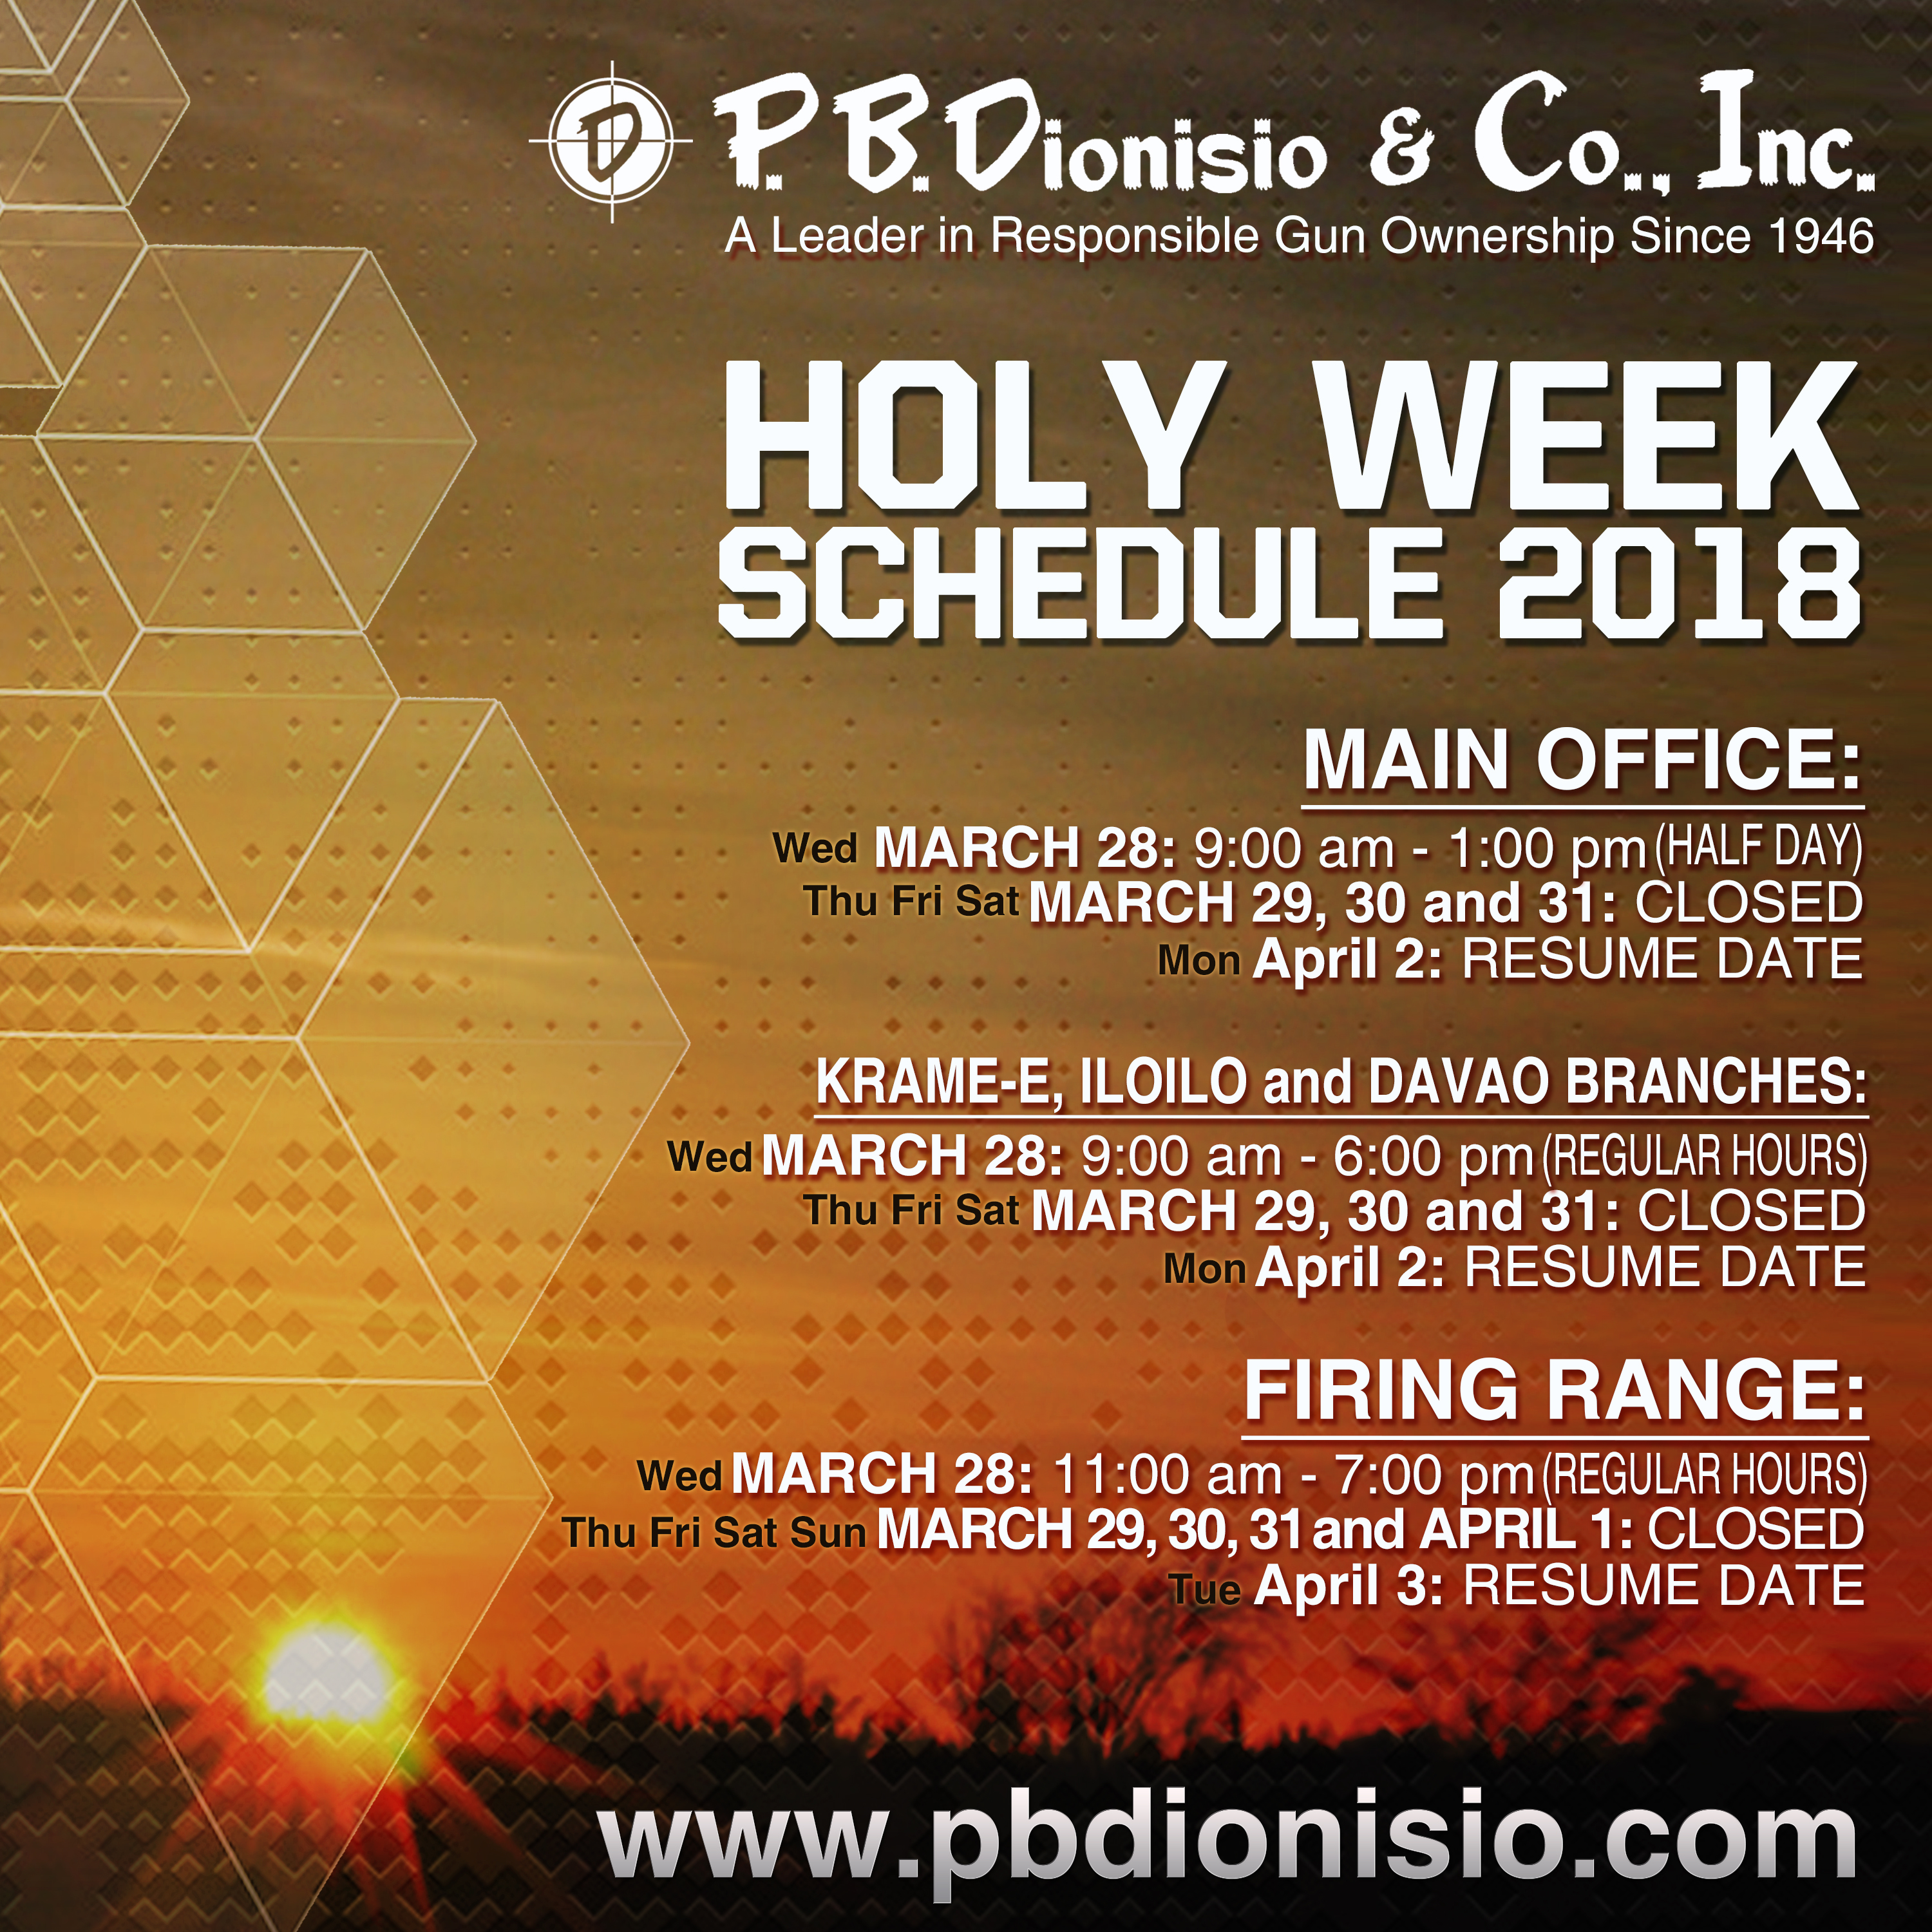 HOLY WEEK SCHEDULE 2018 picture